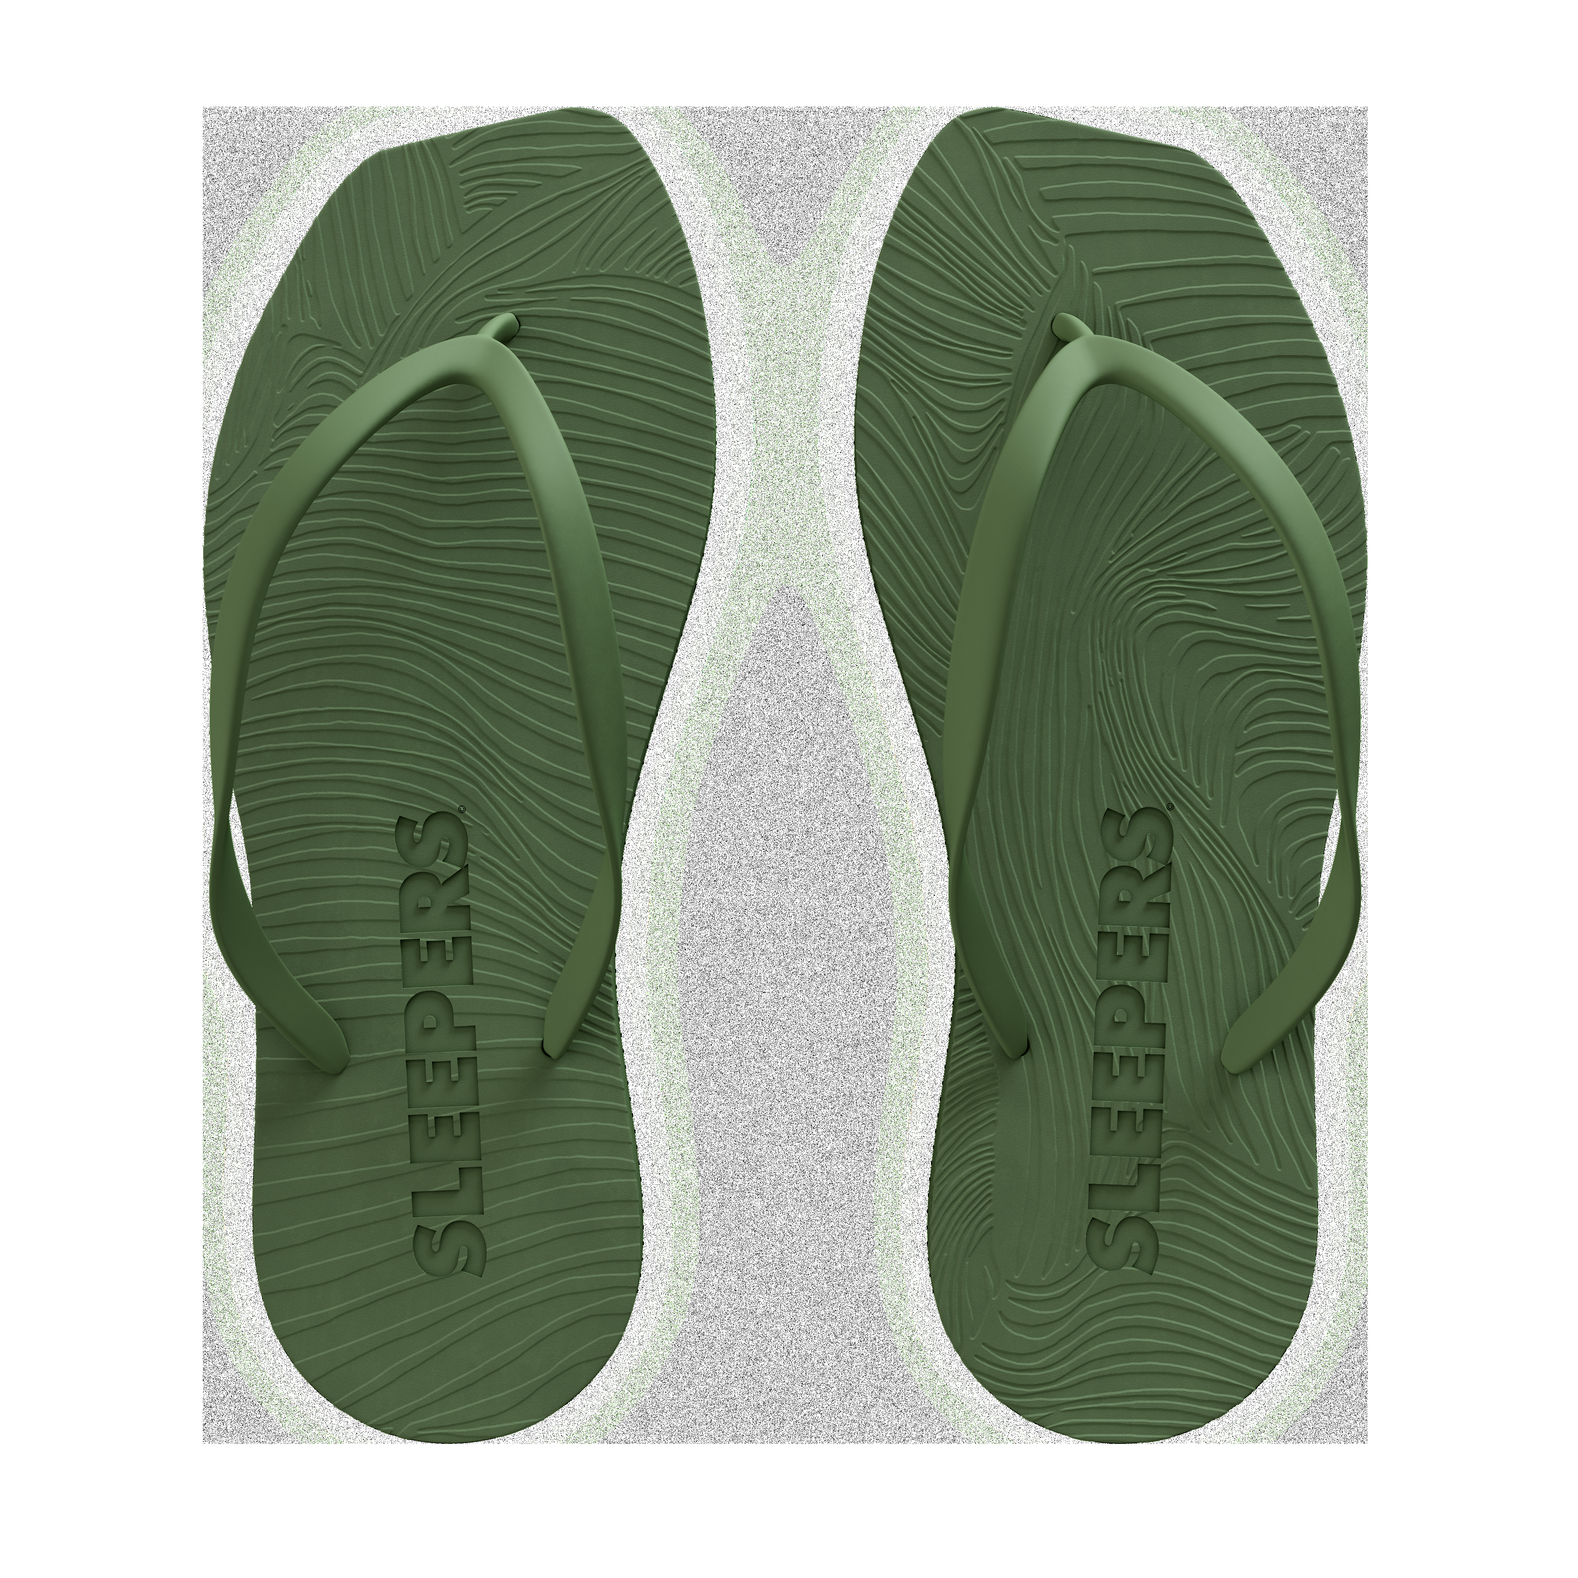 Tapered Natural Rubber - green